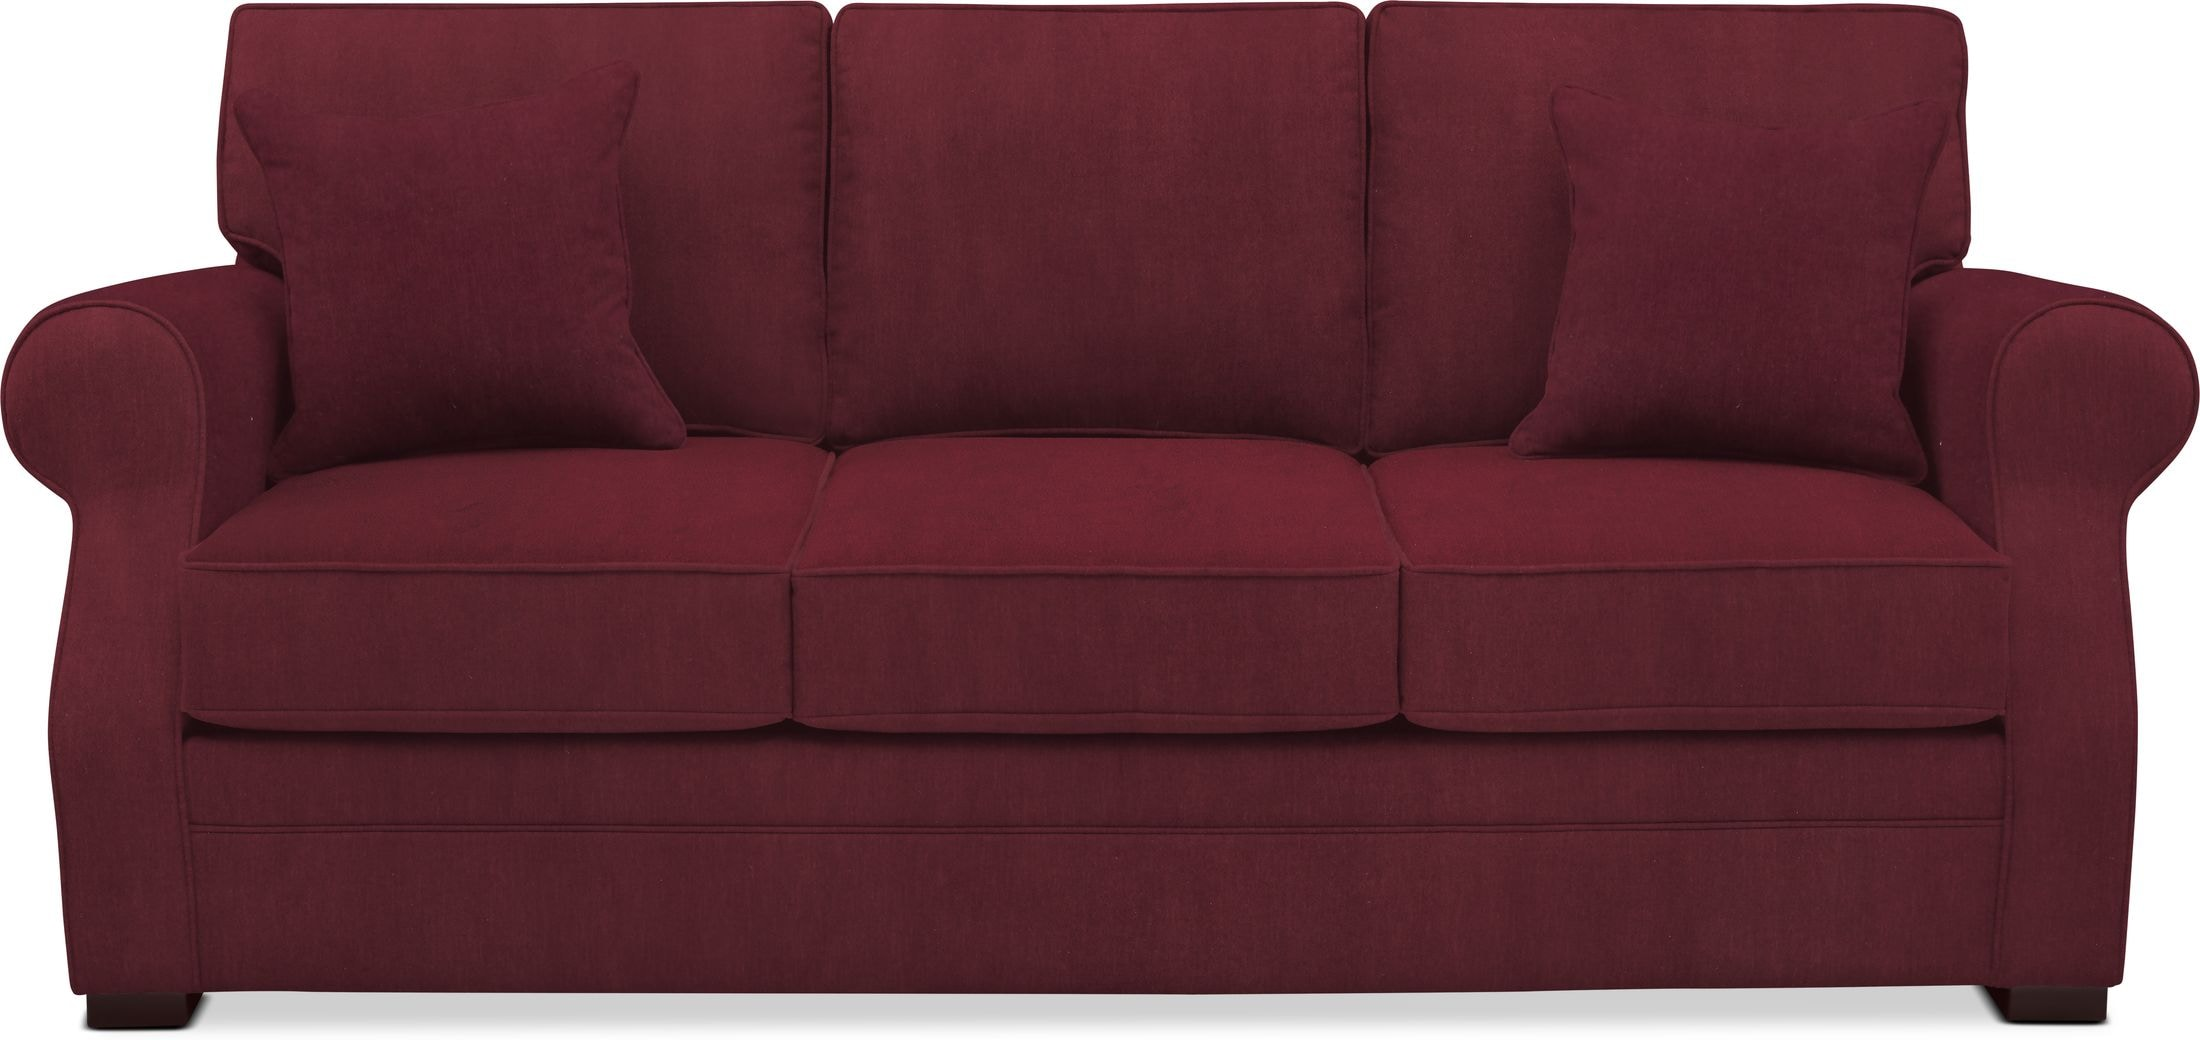 Living Room Furniture - Tallulah Sofa